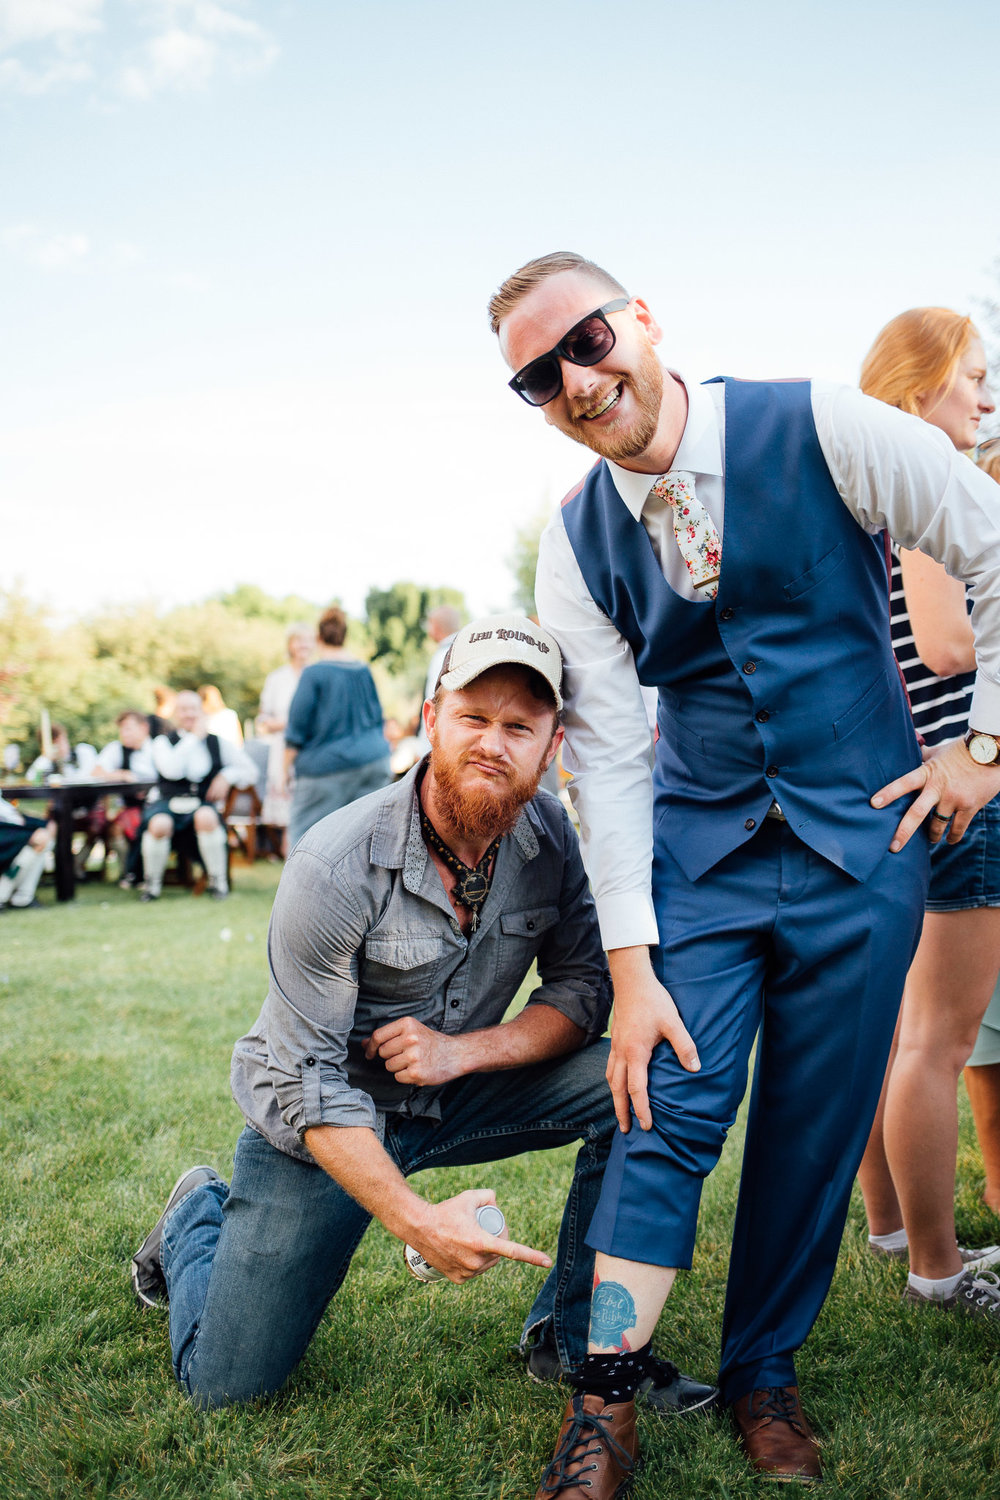 Groom and friend mingle during wedding reception